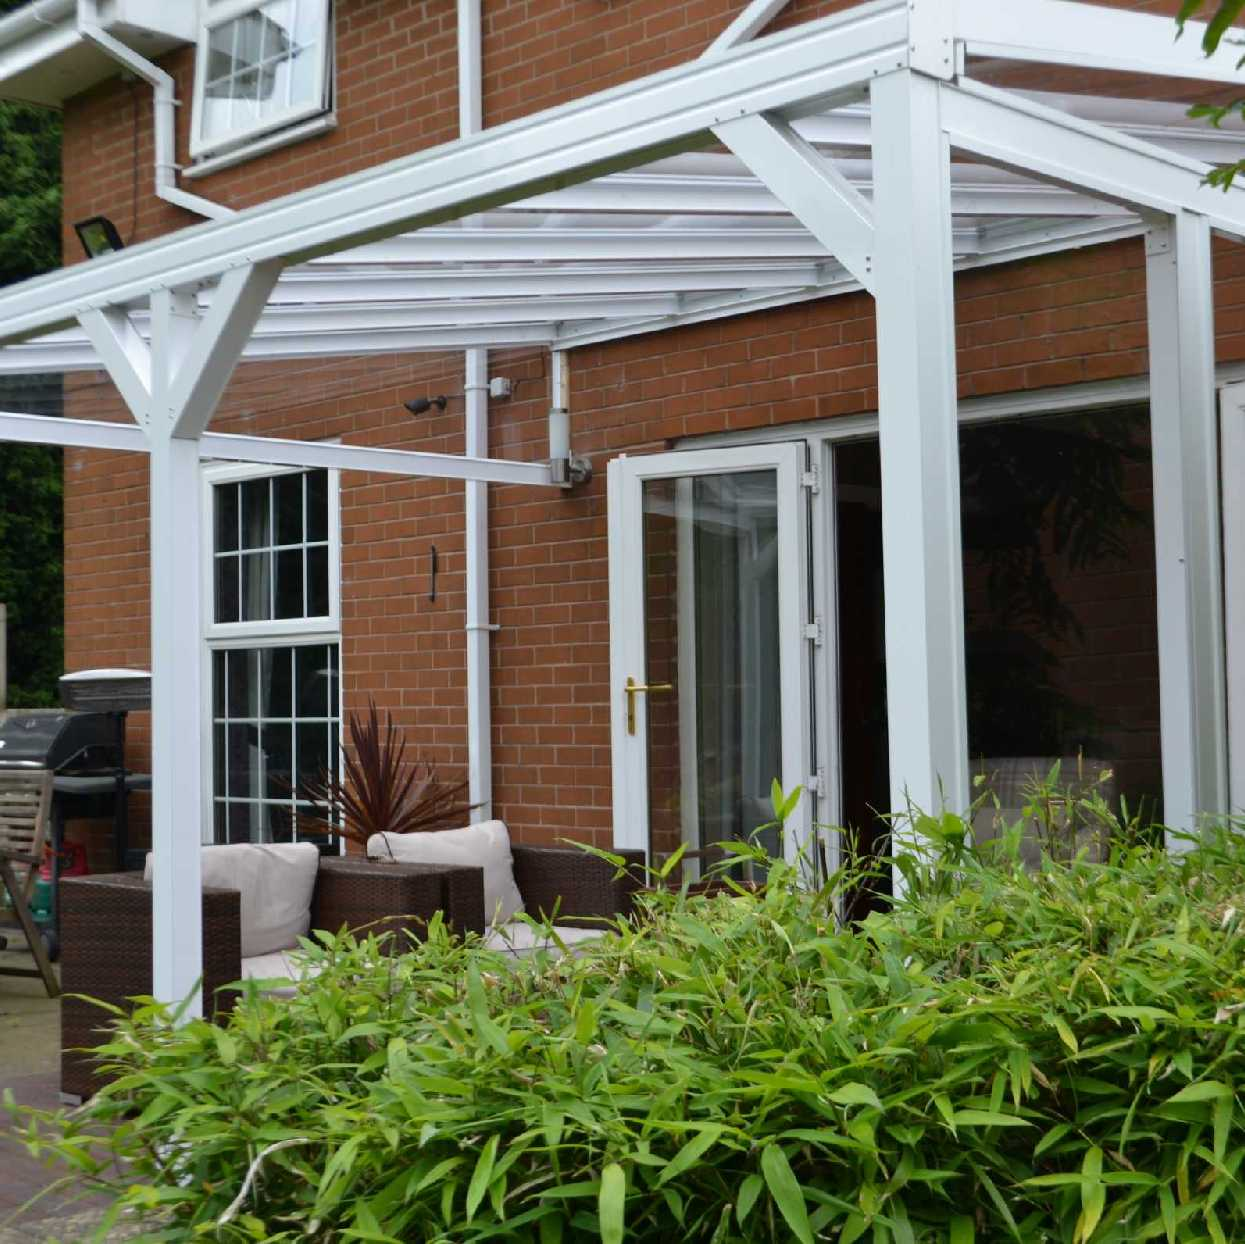 Omega Smart White Lean-To Canopy UNGLAZED for 6mm Glazing - 2.1m (W) x 2.0m (P), (2) Supporting Posts from Omega Build